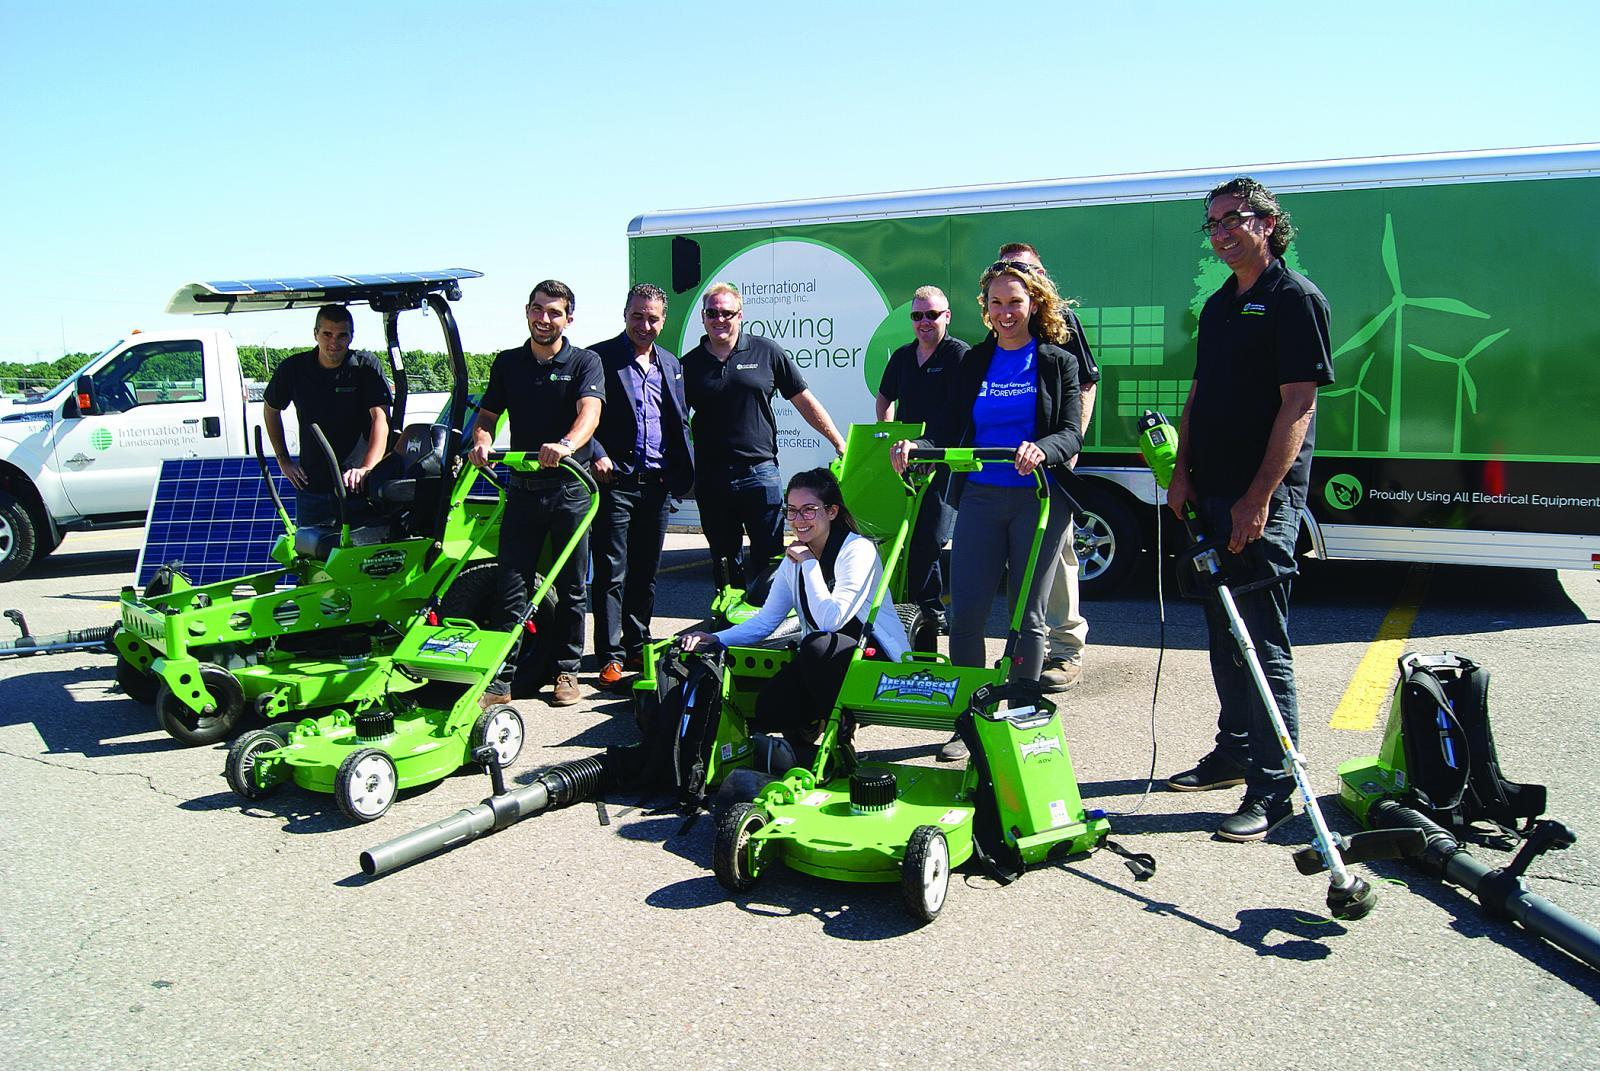 International Landscaping Launches Electric Maintenance